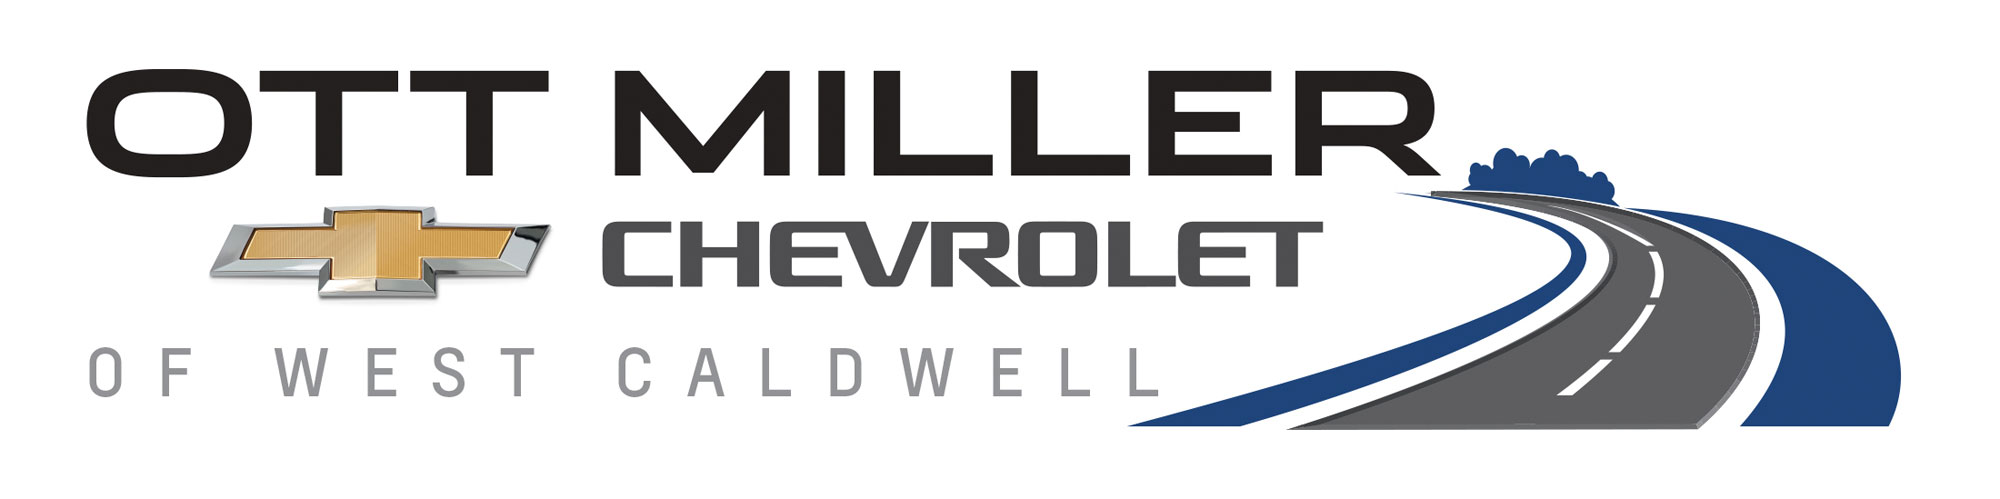 Ott Miller Chevrolet of West Caldwell, NJ